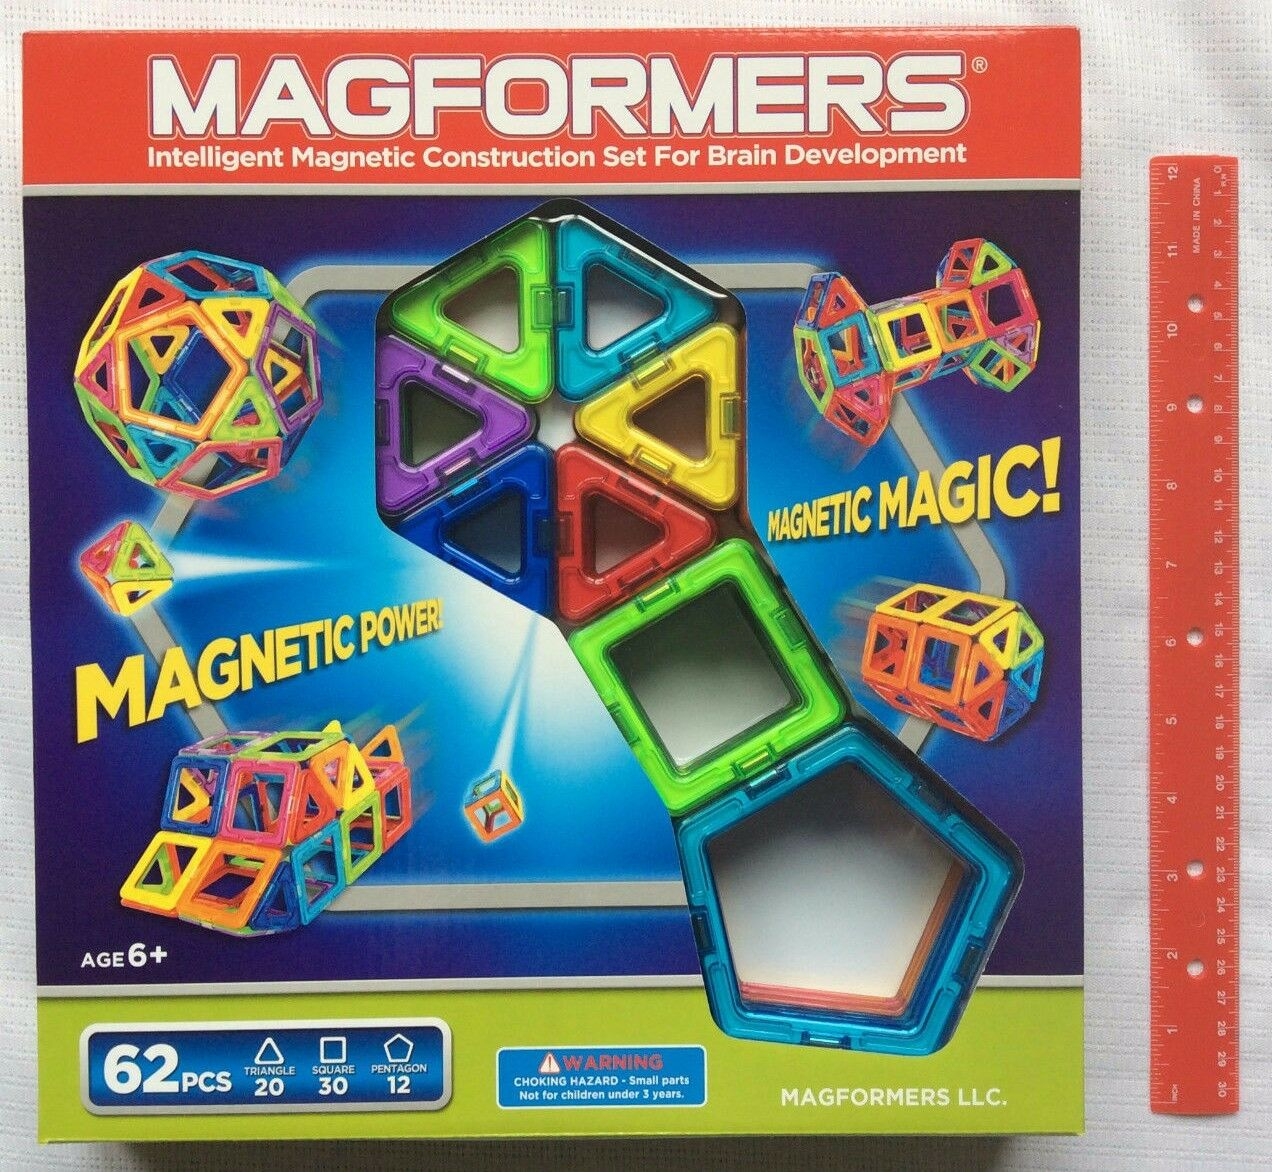 Magformers 62 Pc. Set Magnetic Building Shapes 63070 Rainbow Build Construction